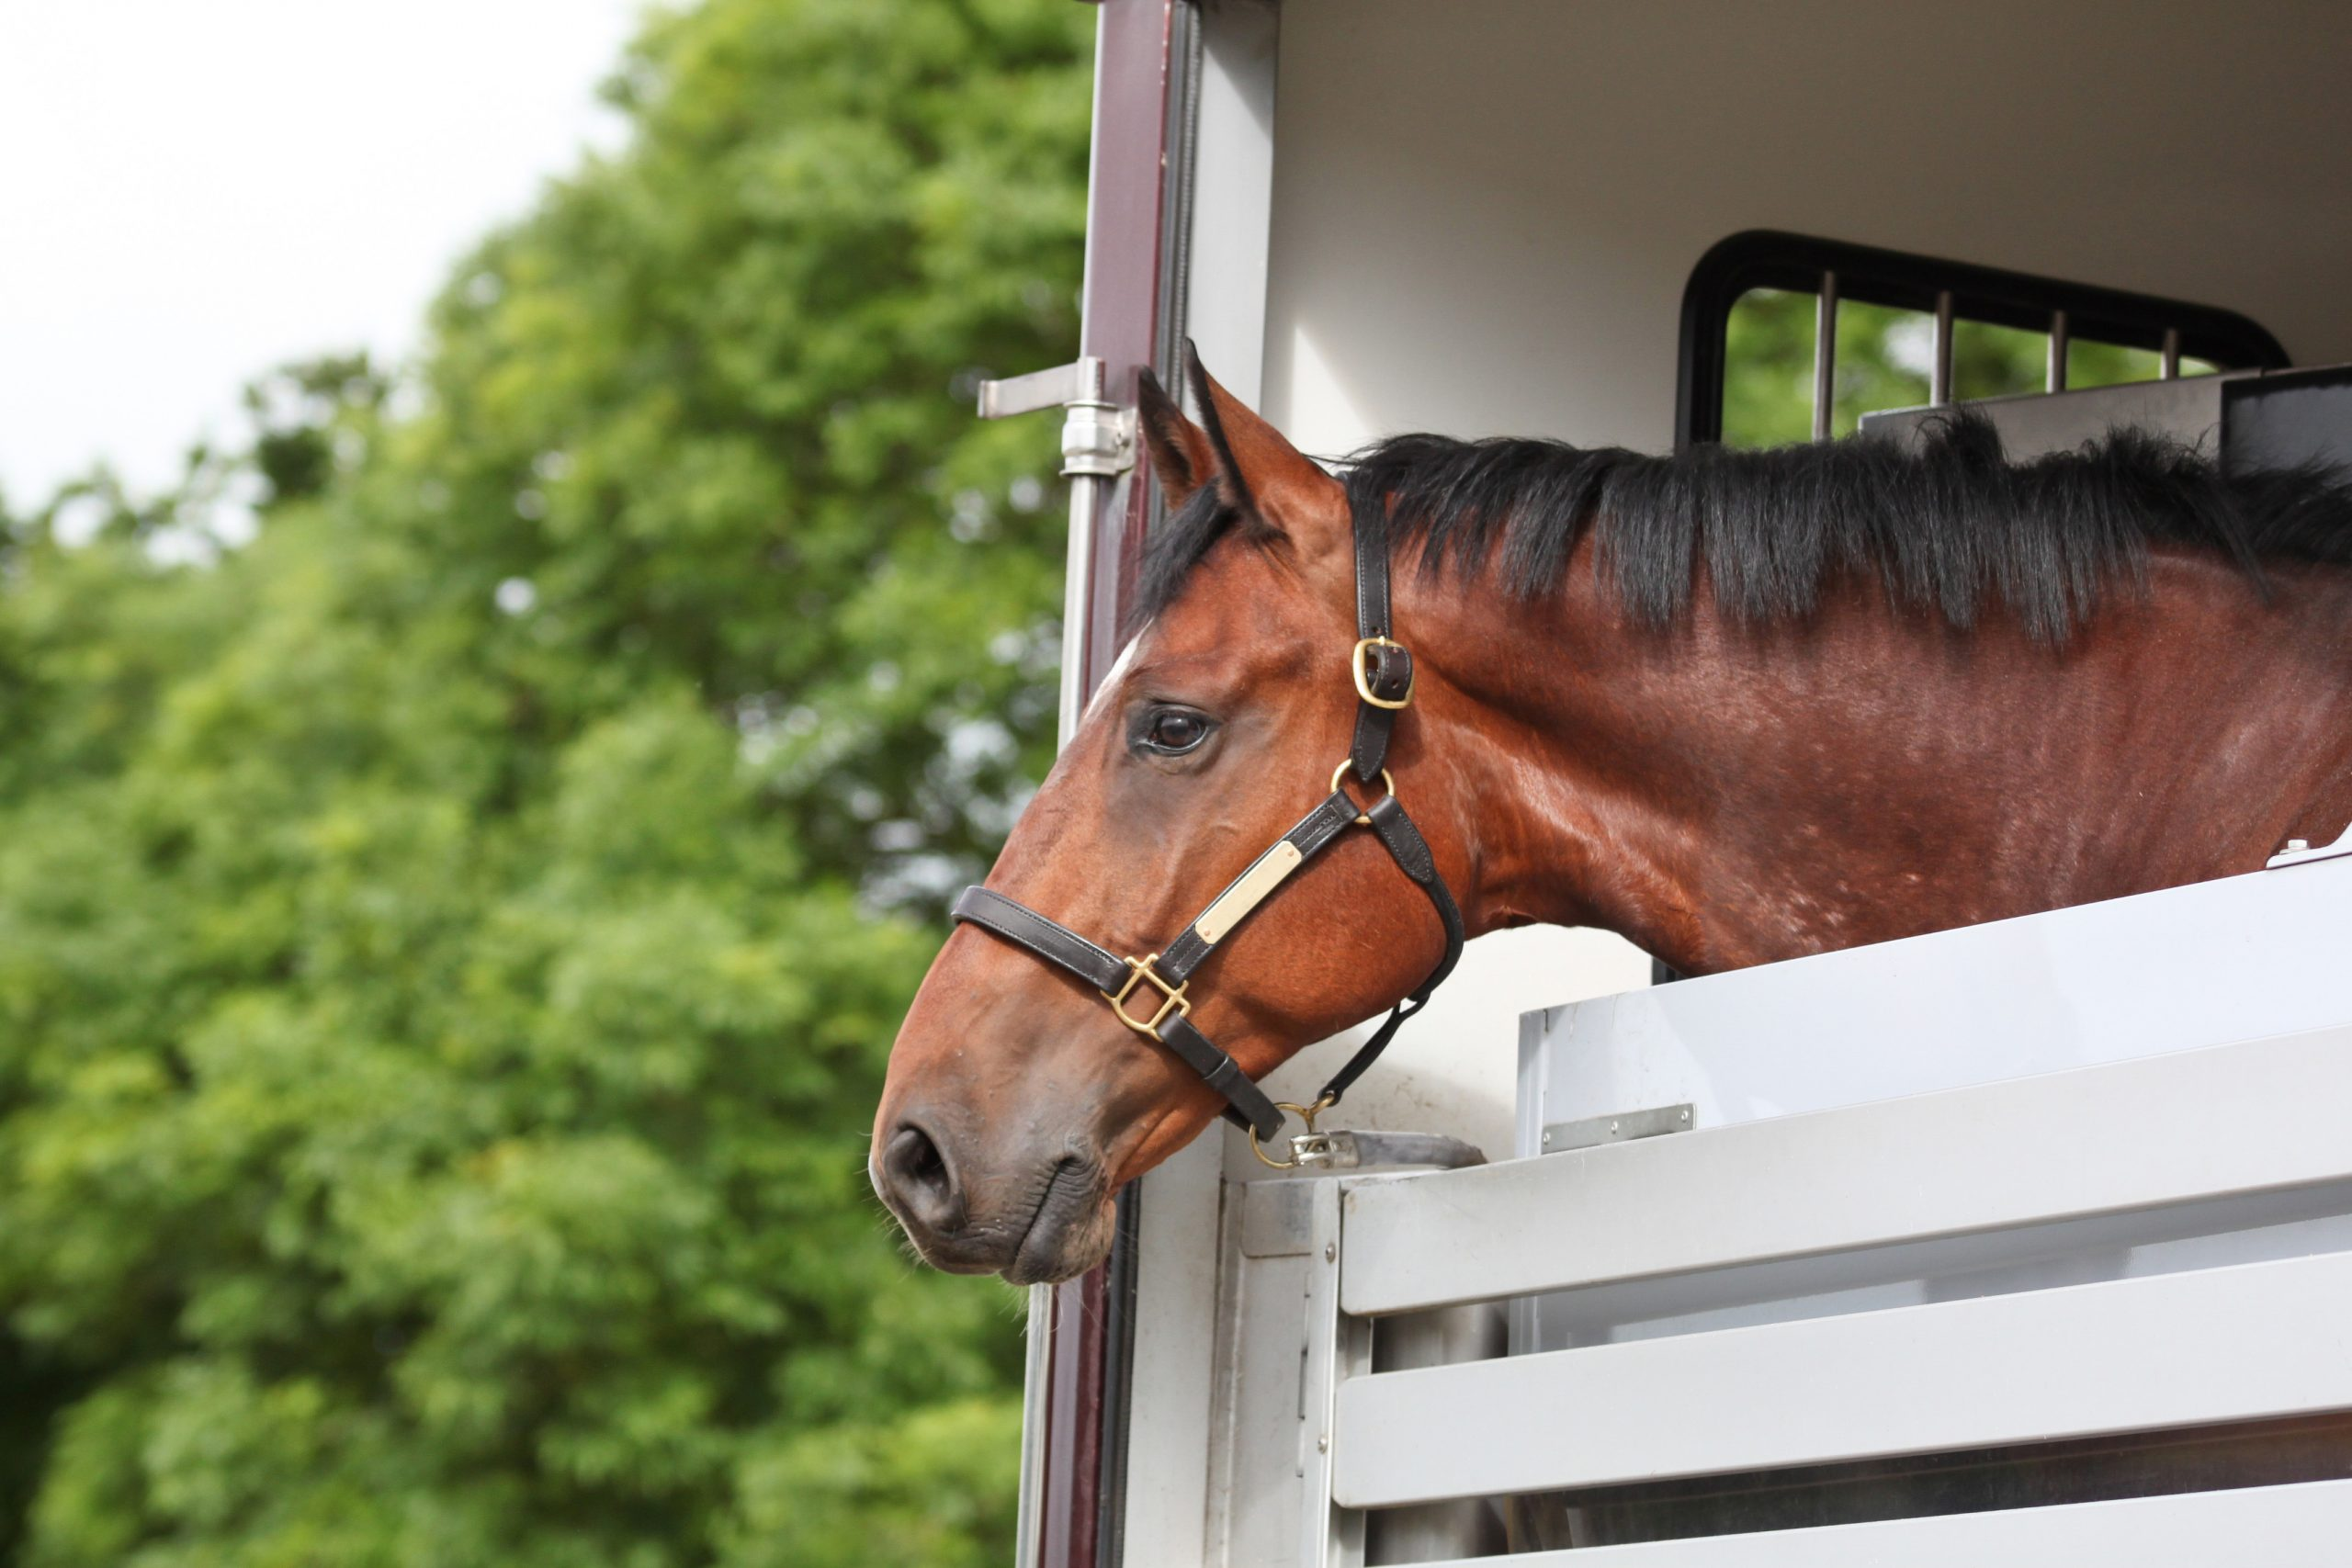 Horse transported in a horse trailer